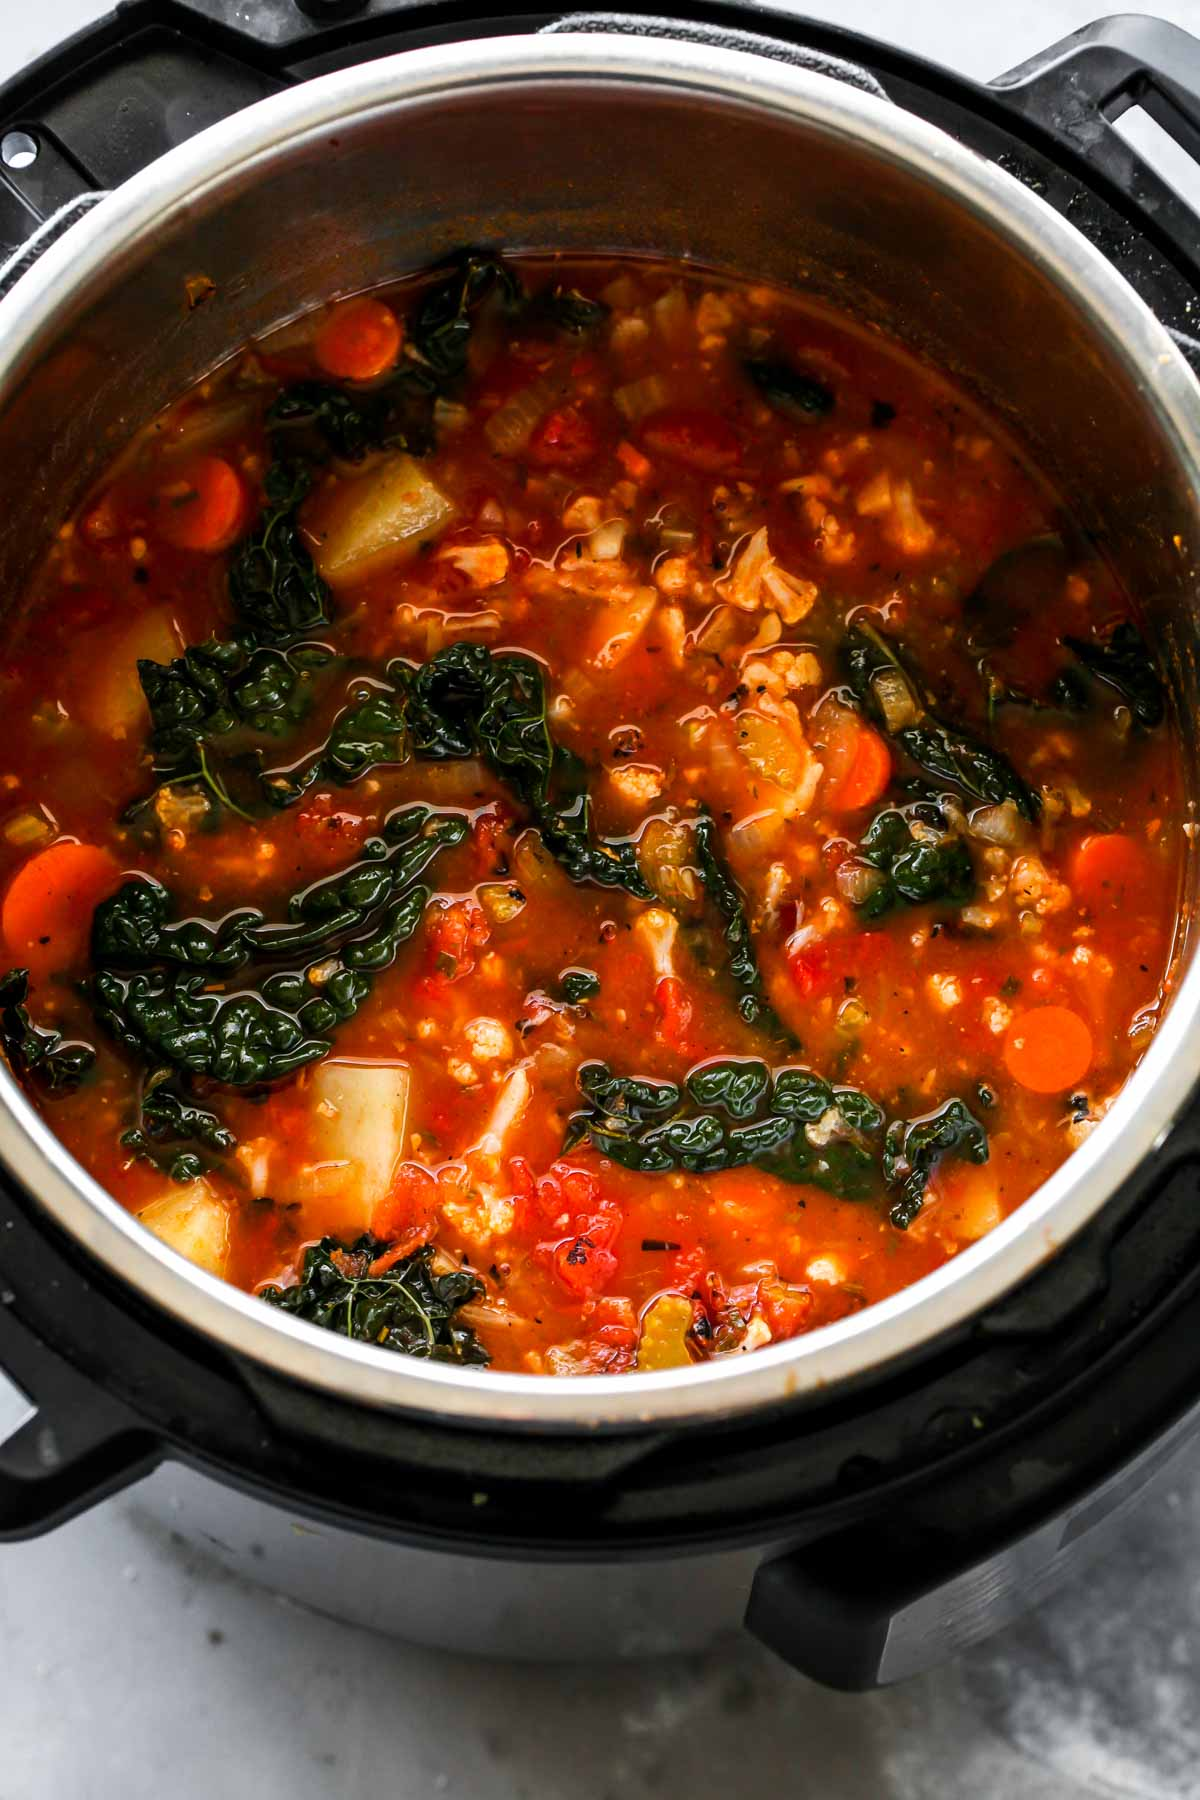 Instant Pot filled with vegetable soup